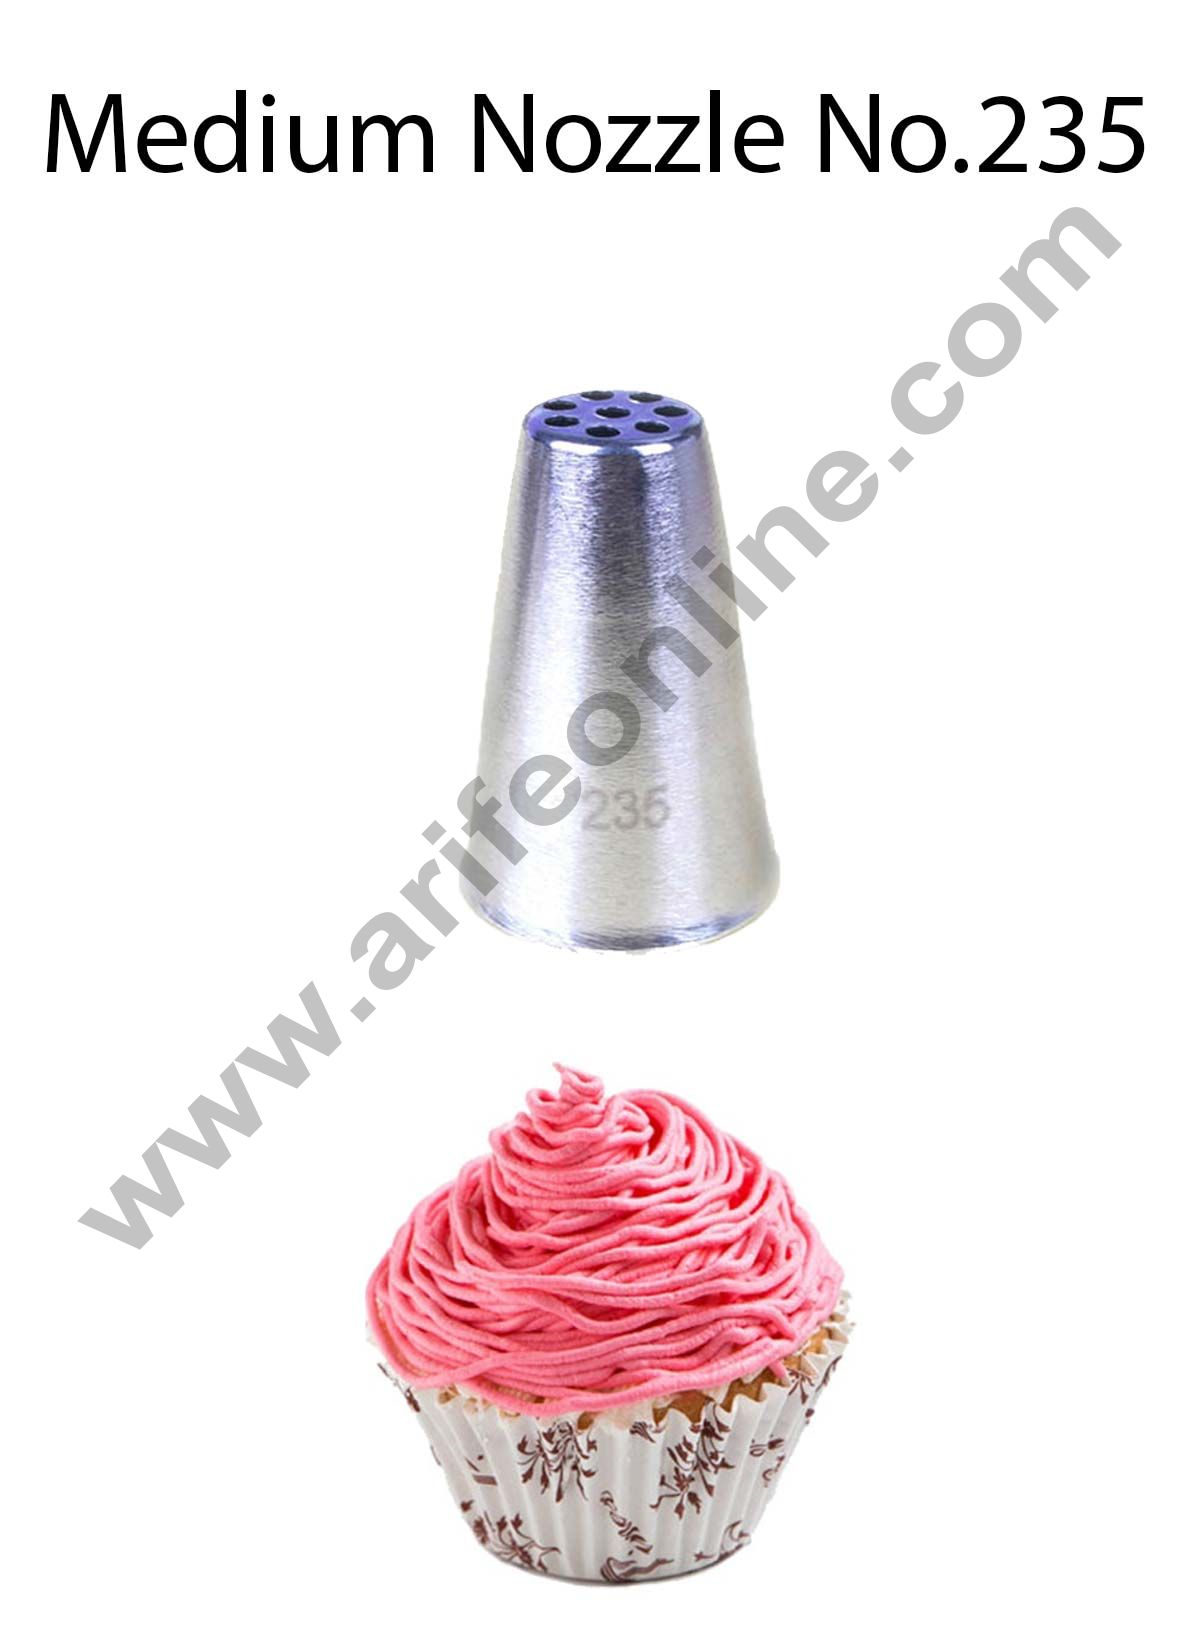 Cake Decor Medium Nozzle - No. 235 Small Plain Grass Piping Nozzle